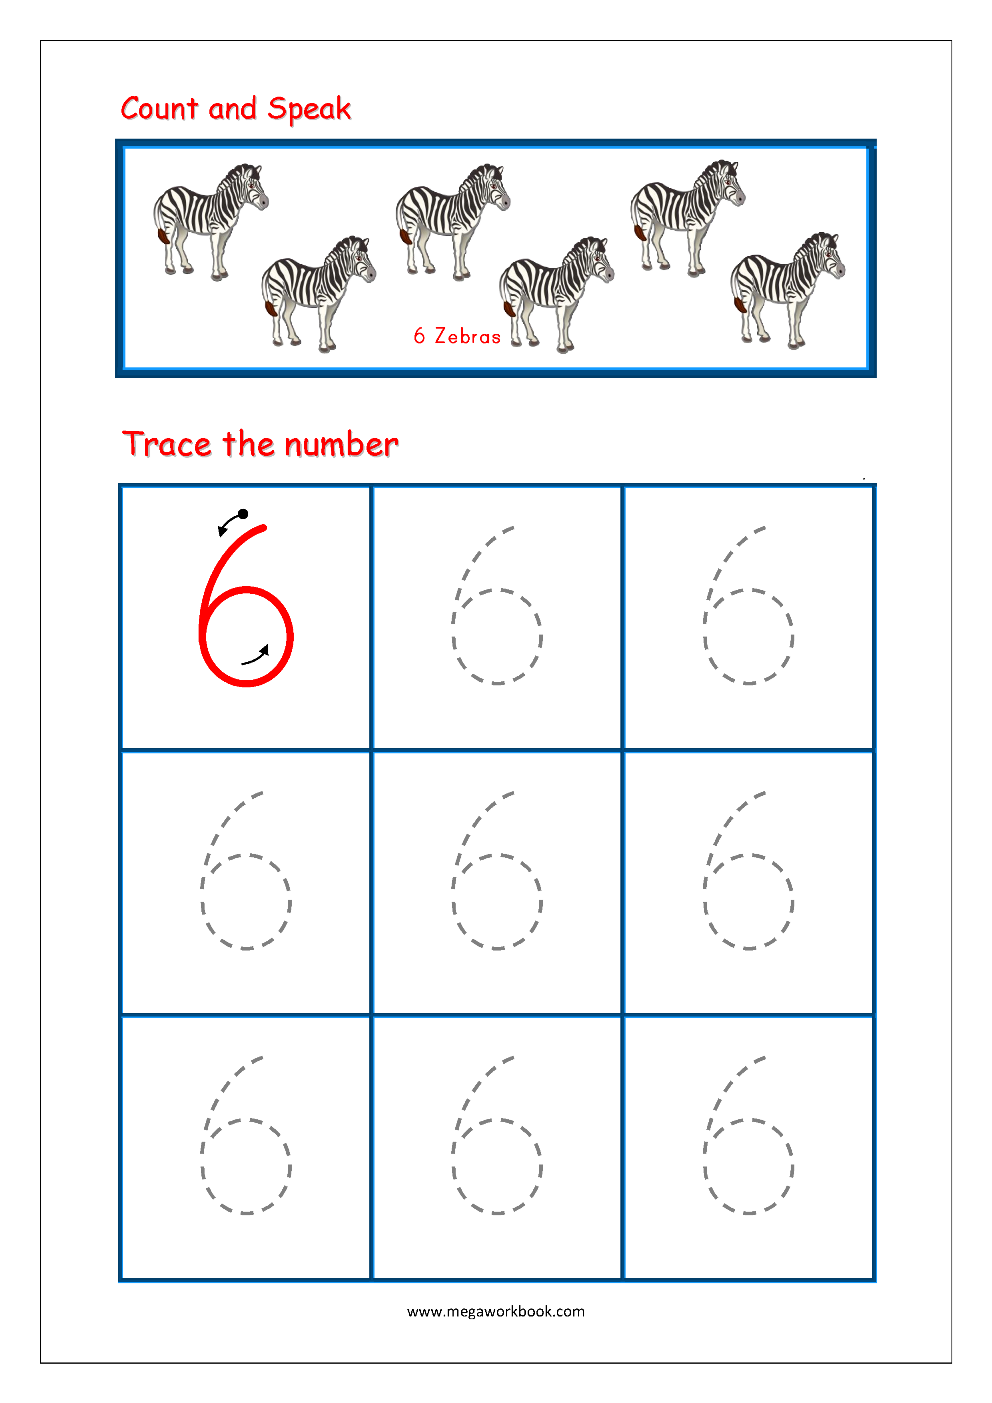 Number Tracing Tracing Numbers Number Tracing Worksheets Tracing Numbers 1 To 10 Writing Numbers 1 To 10 Megaworkbook - 41+ Number Free Printable Worksheets For Kindergarten Images